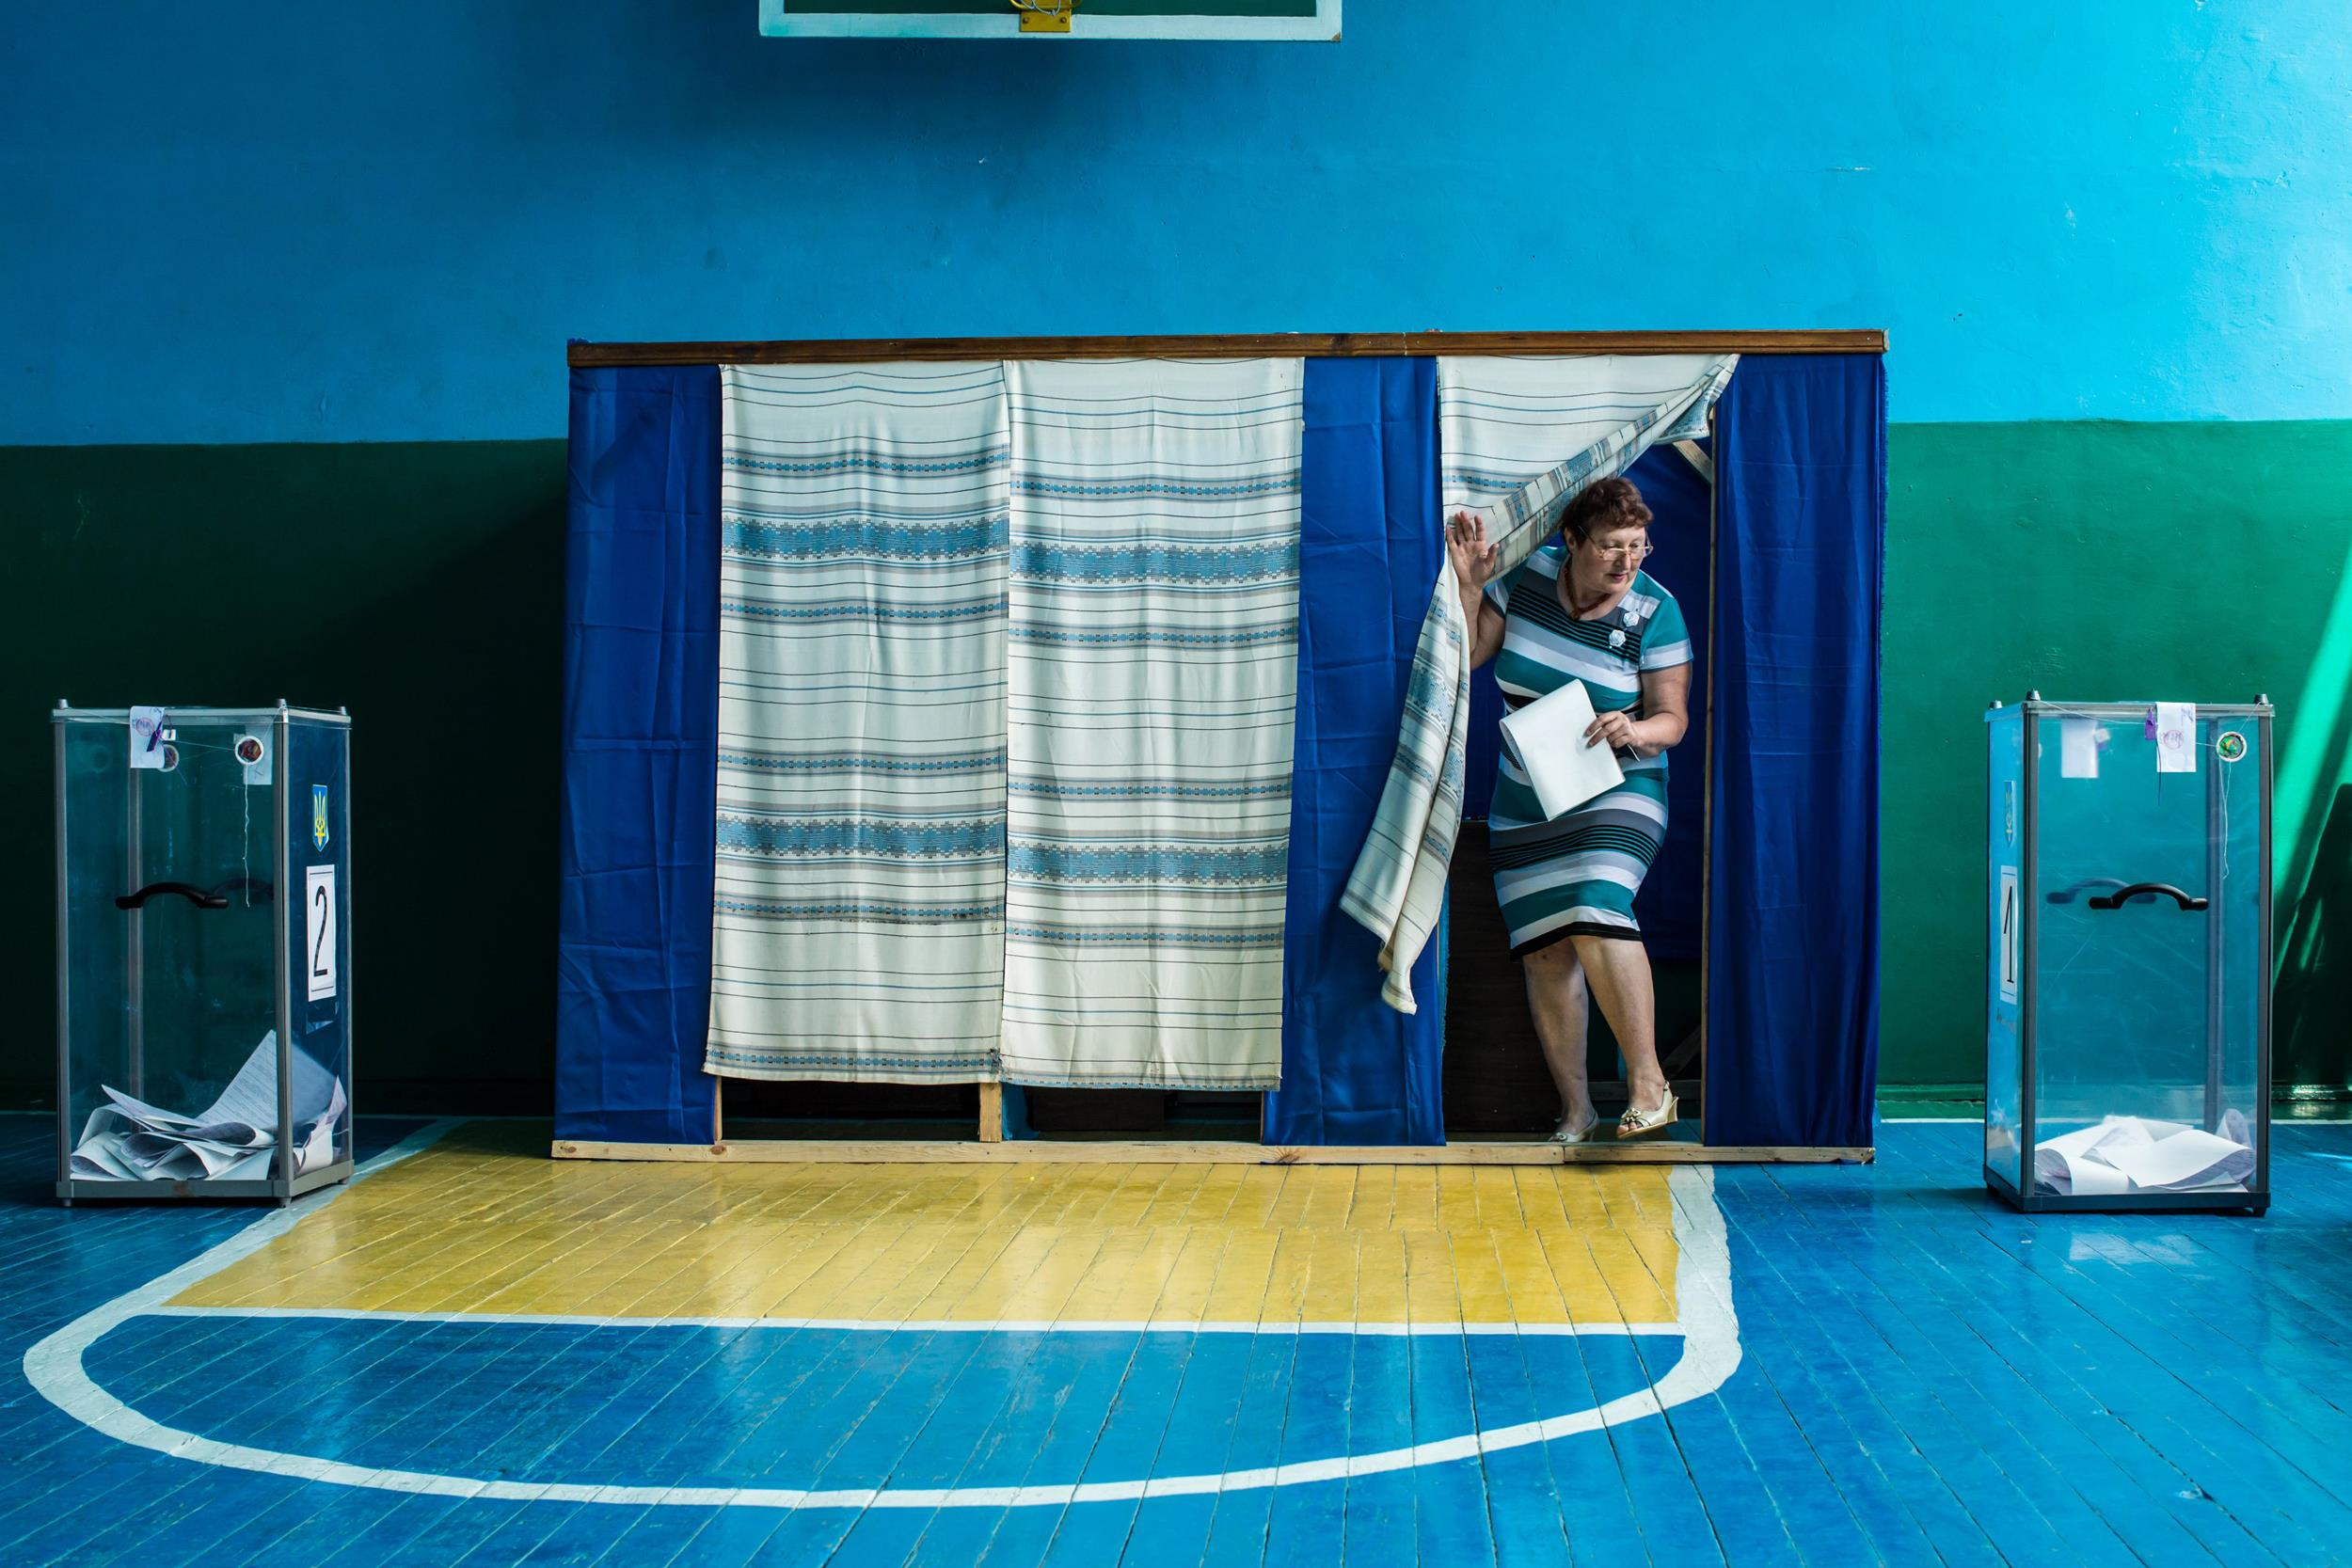 Image: A woman at a polling station emerges from a voting booth after filling out her ballot in Ukraine's presidential election